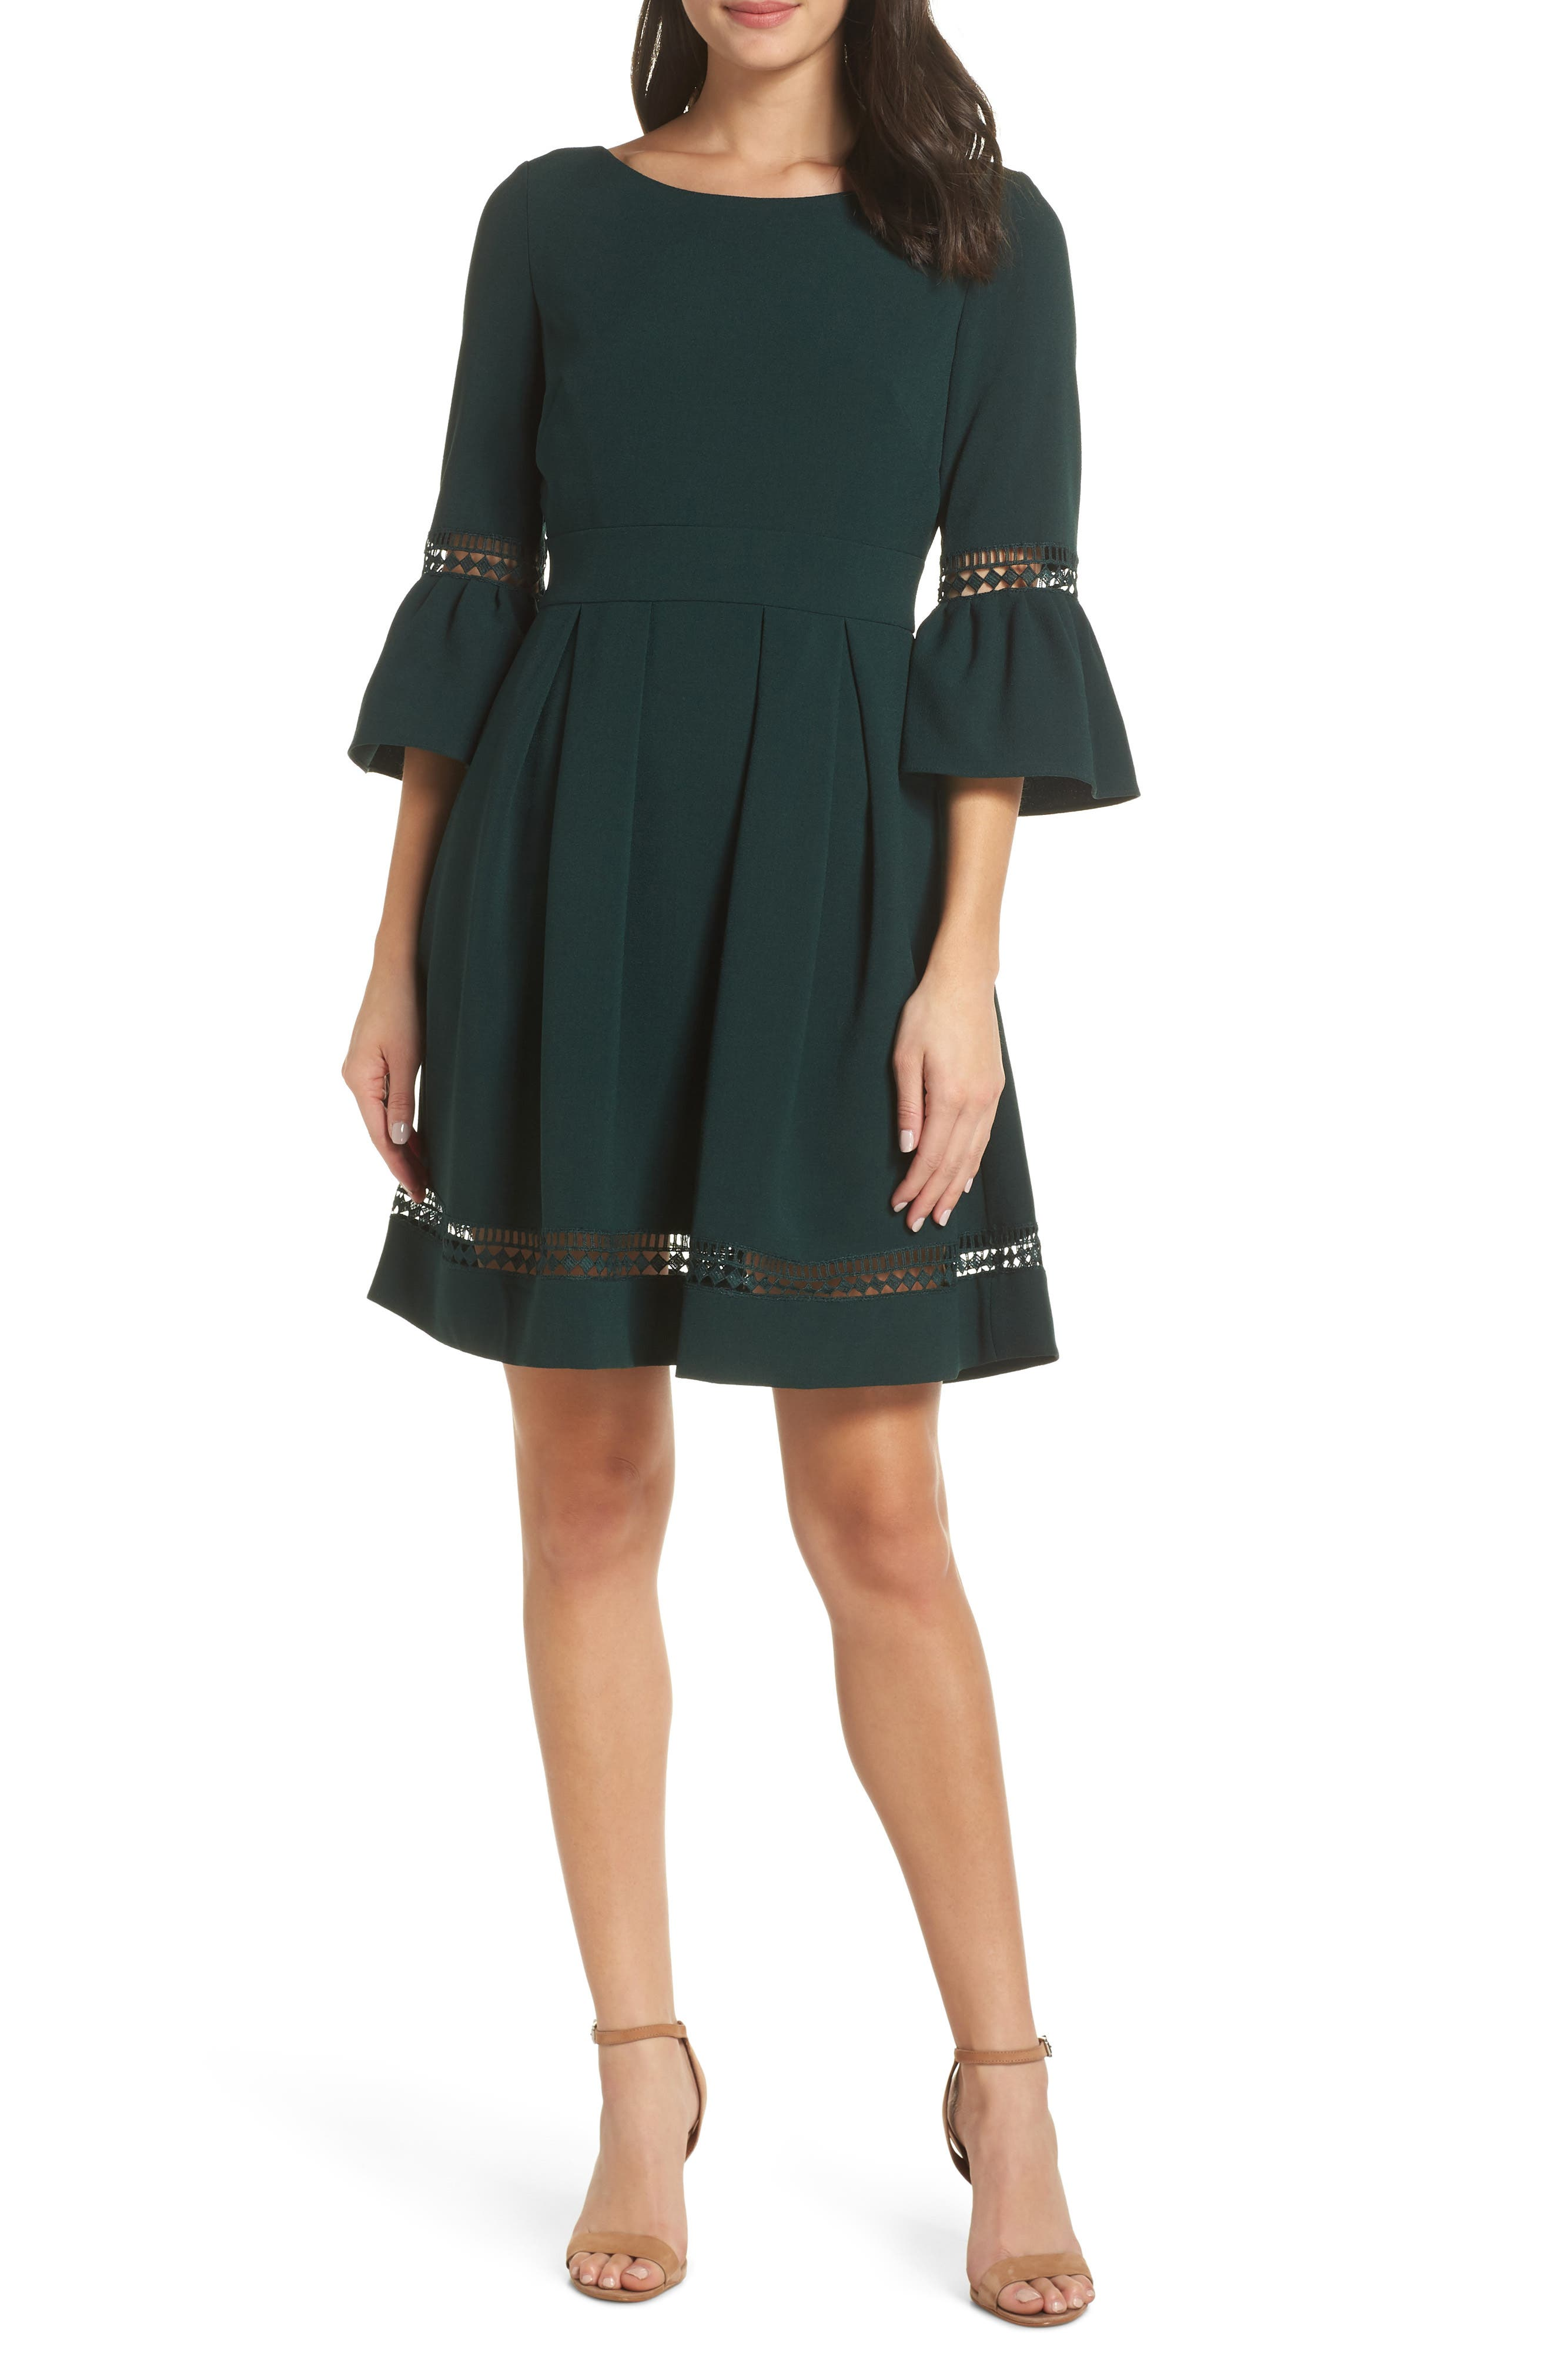 Eliza J Bell Sleeve Fit & Flare Dress, 8 (similar to 1) - Green